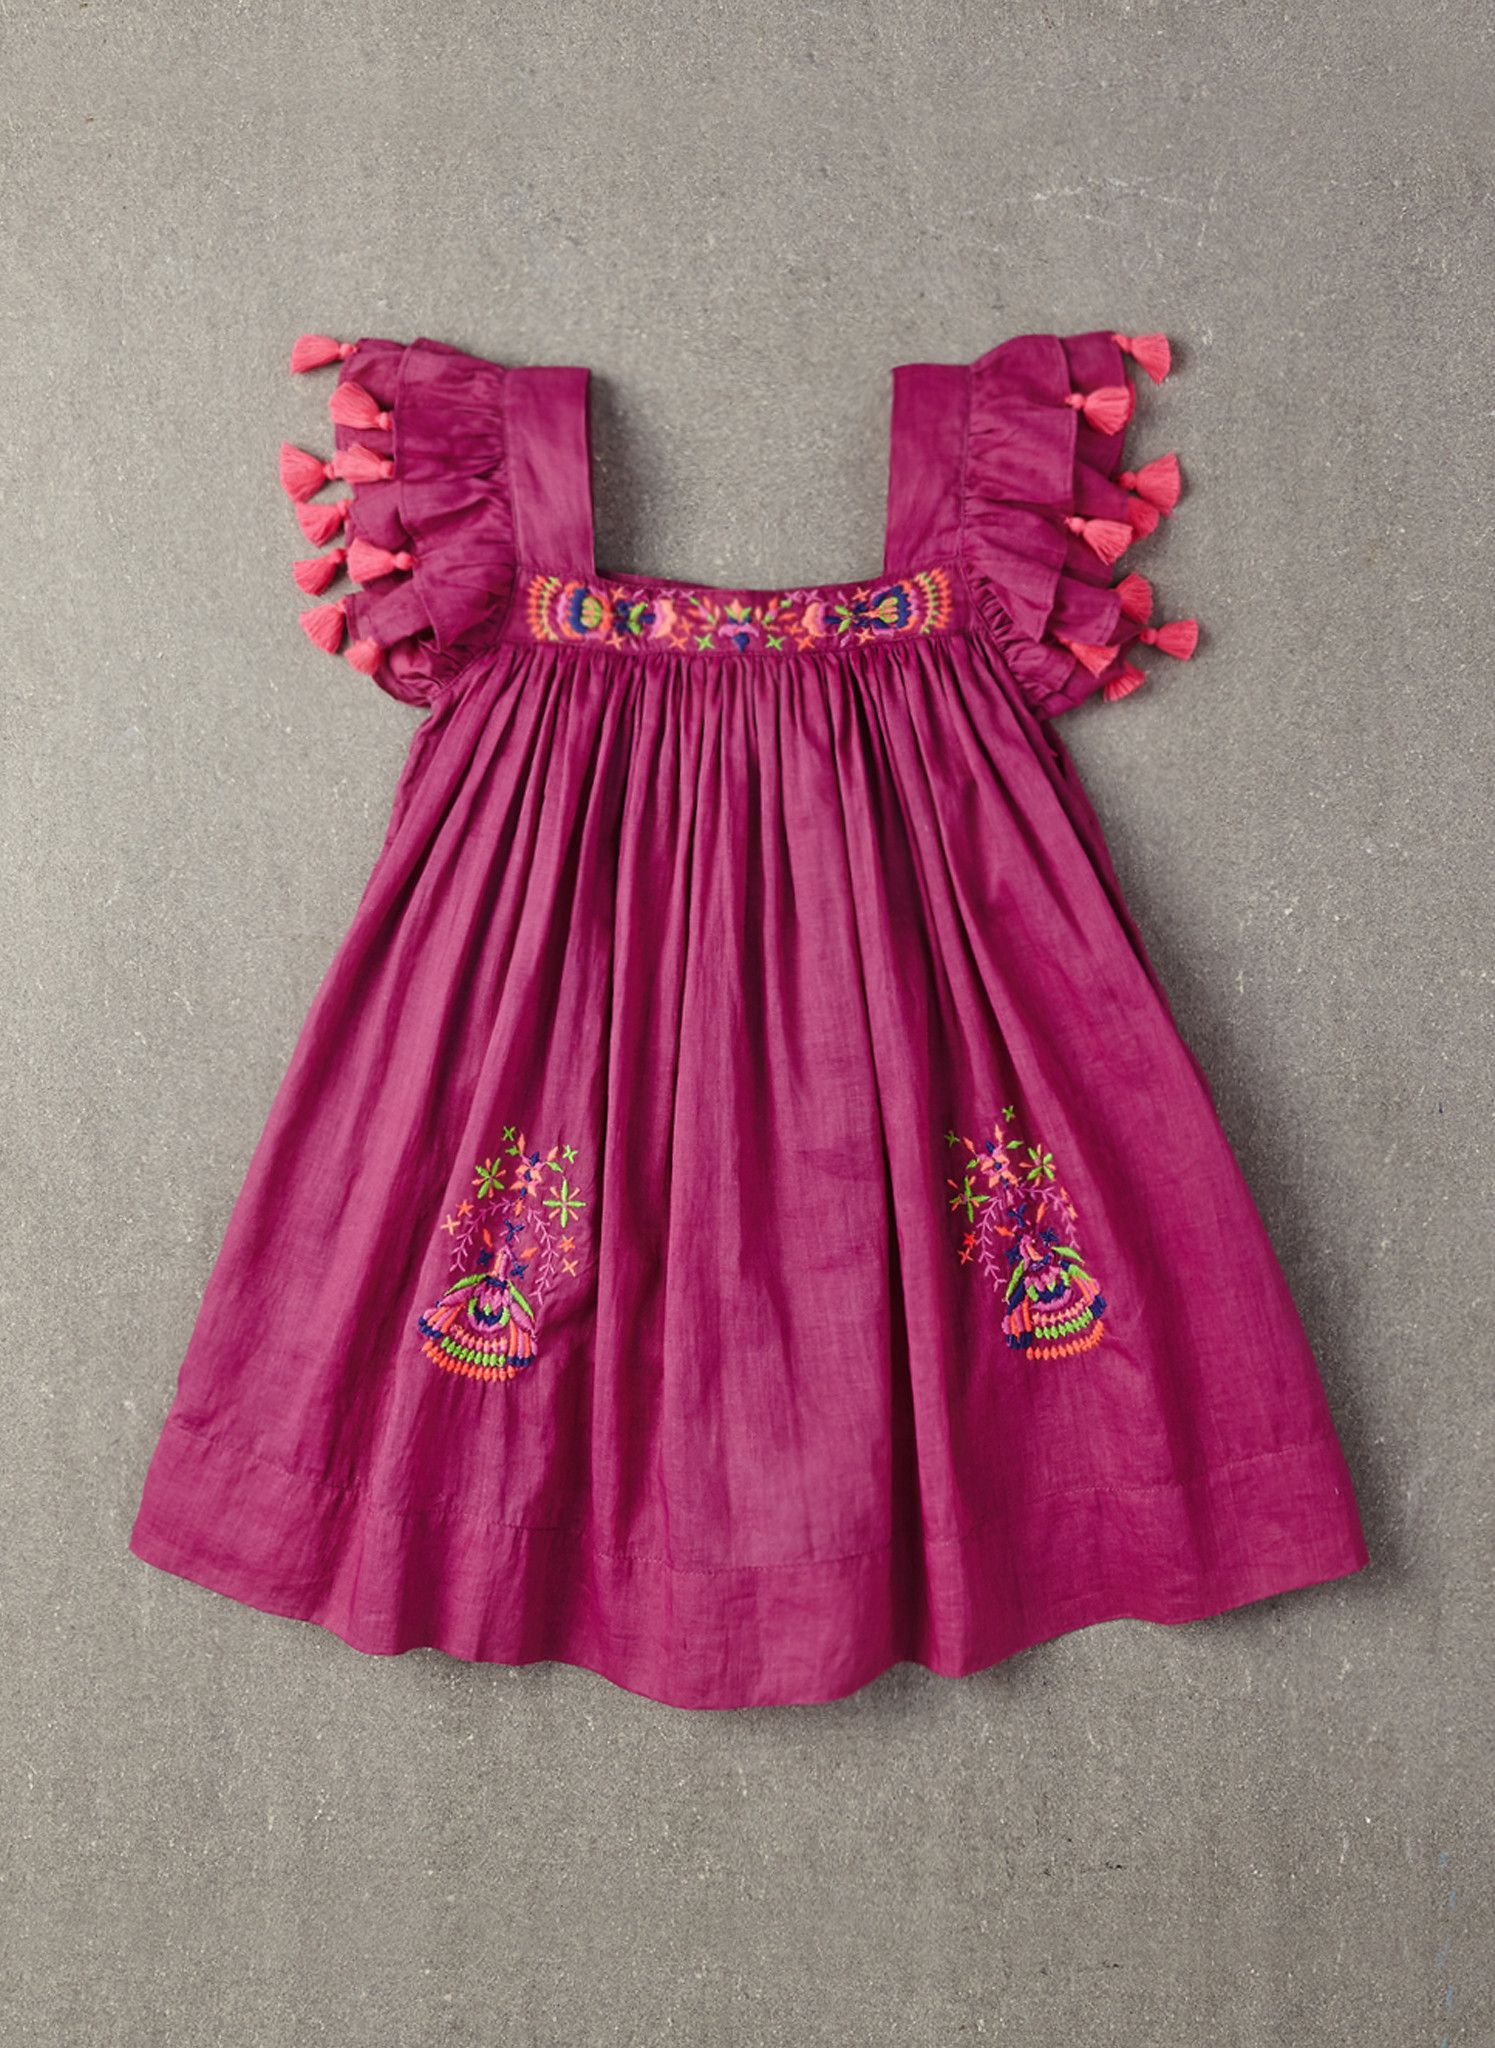 60b7d2394f2ac9 100% cotton A-line dress with embroidery & pompoms in Spring Crocus ...